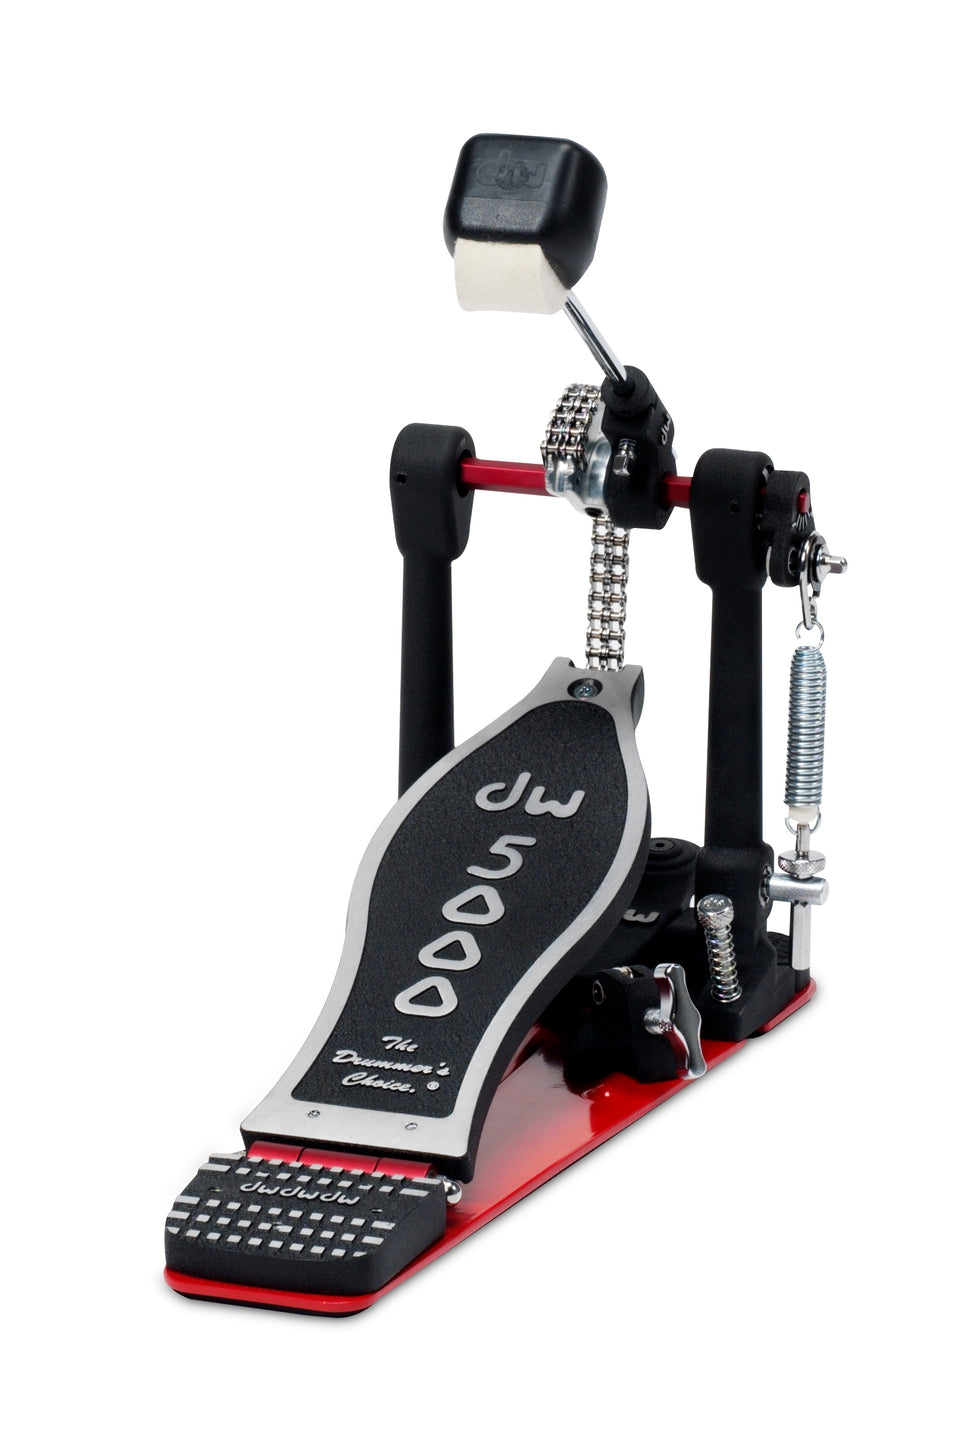 Drum Workshop DWCP5000AD4 Delta III Accelerator Pedal With Bag